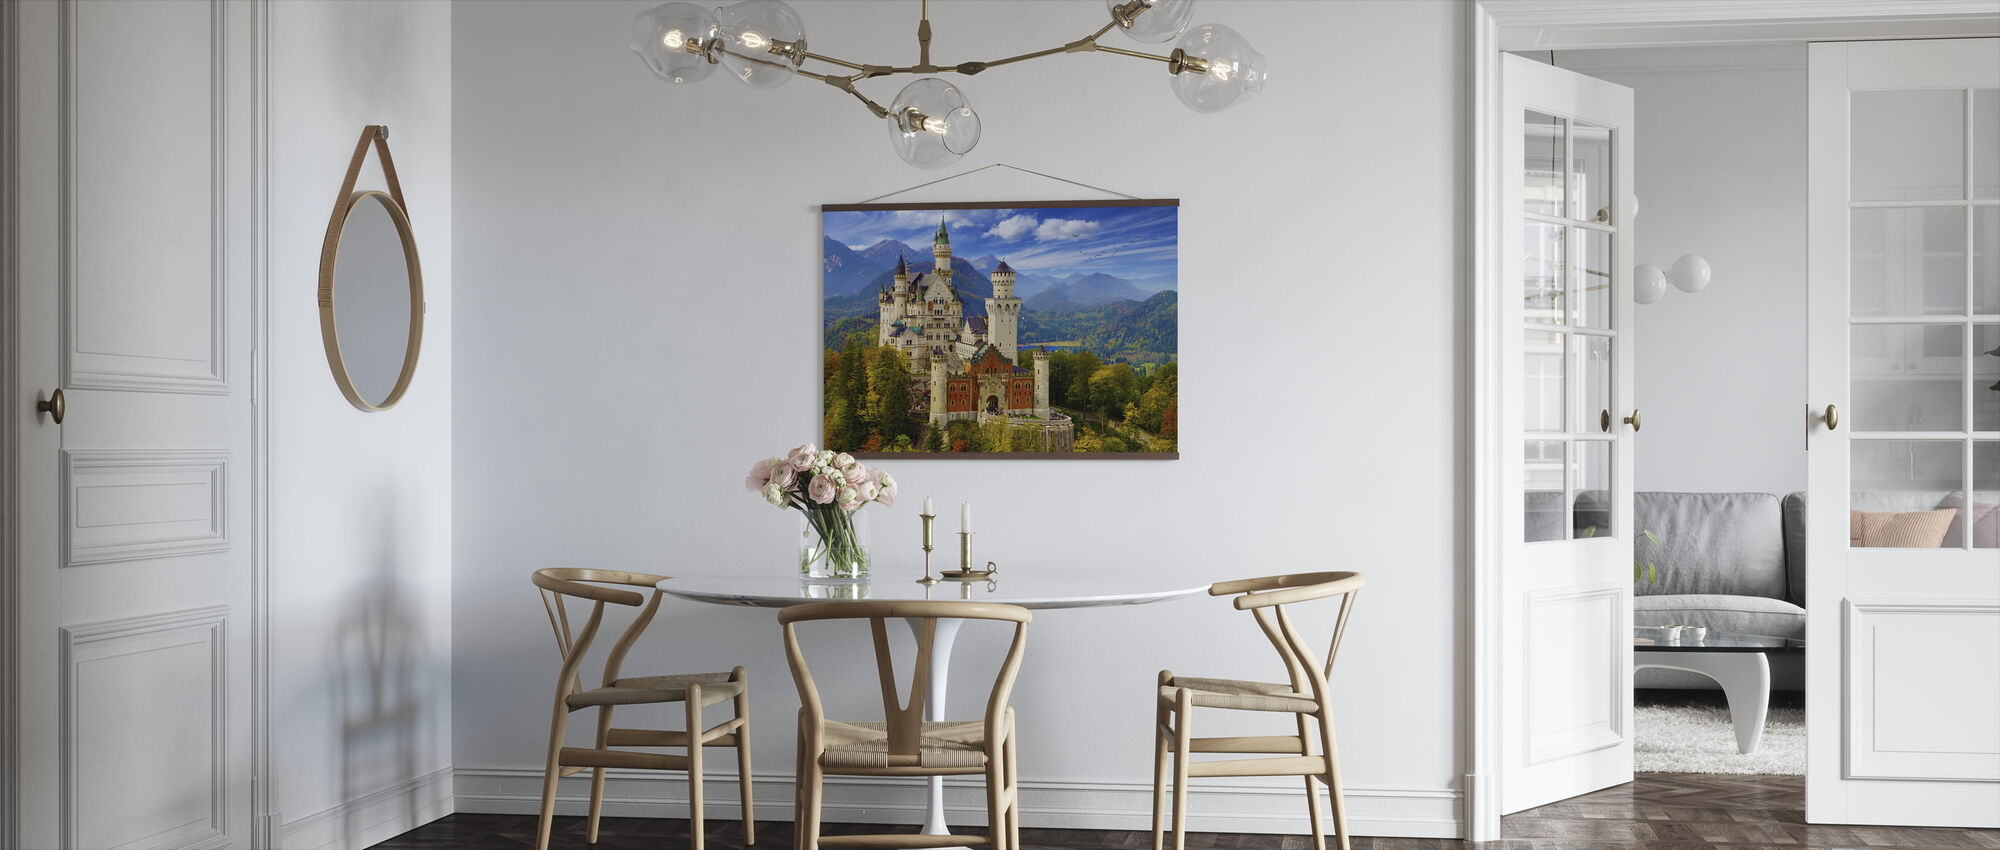 Neuschwanstein Castle - Poster - Kitchen